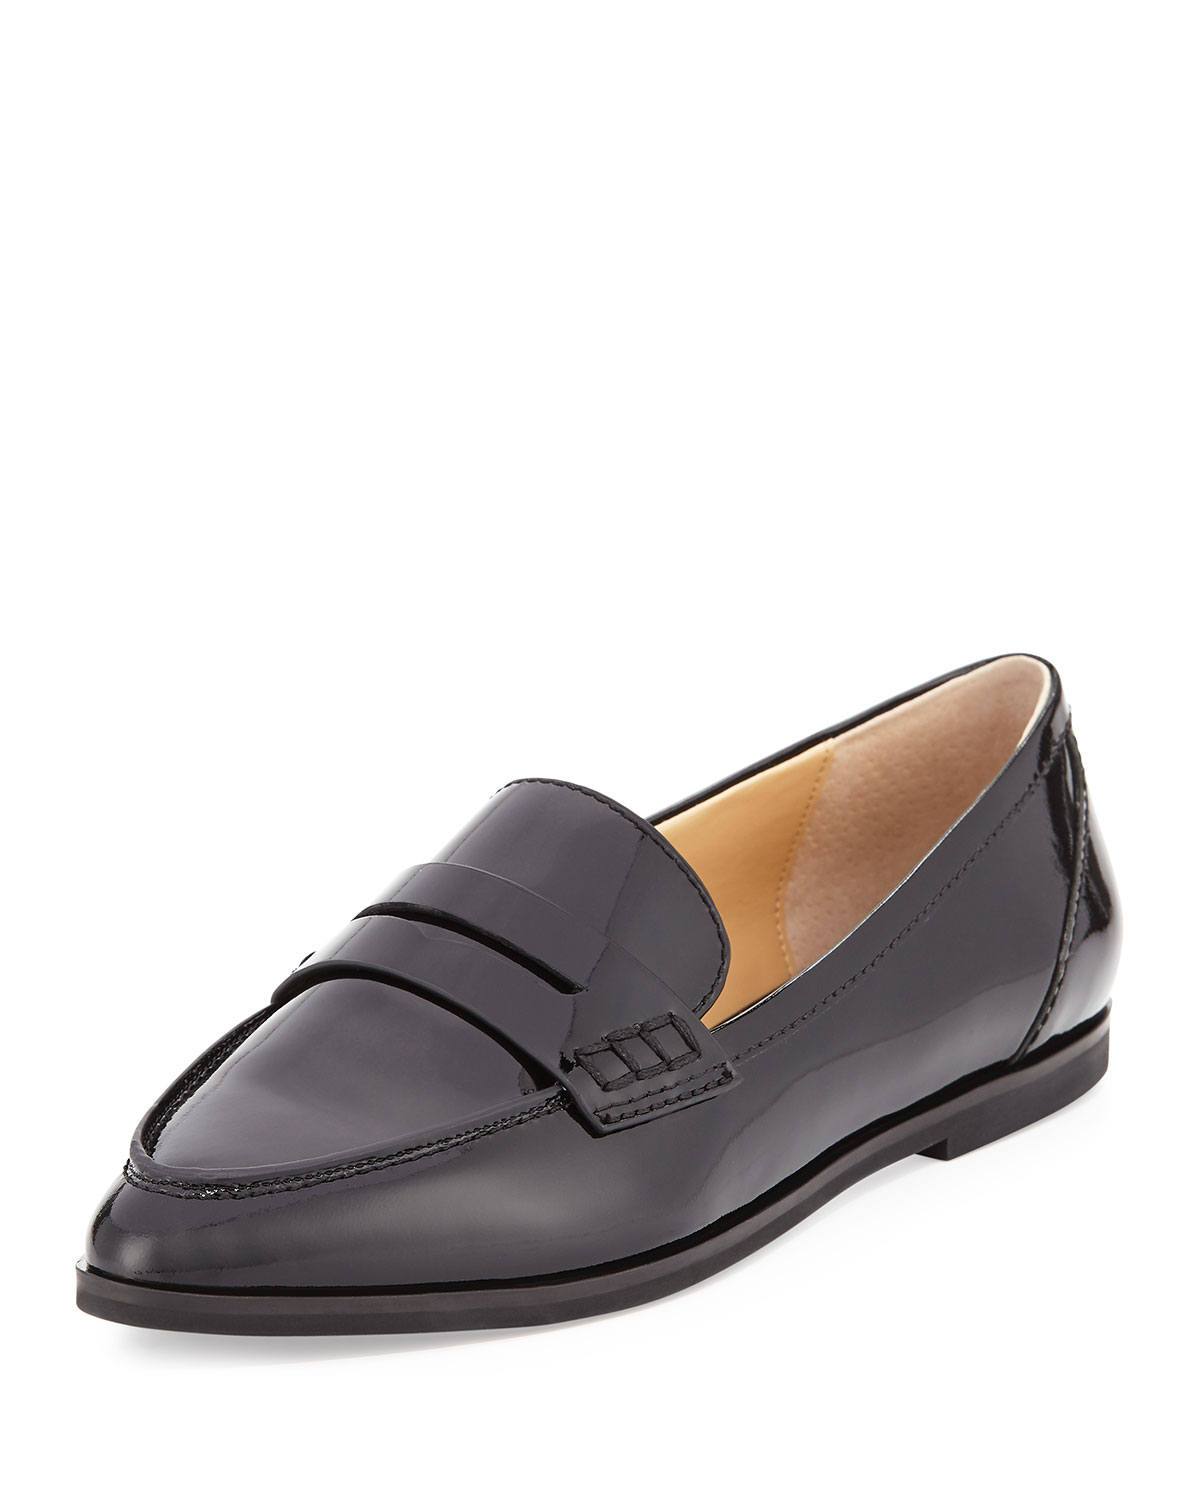 ba5703ce460 MICHAEL Michael Kors Connor Patent Leather Penny Loafer